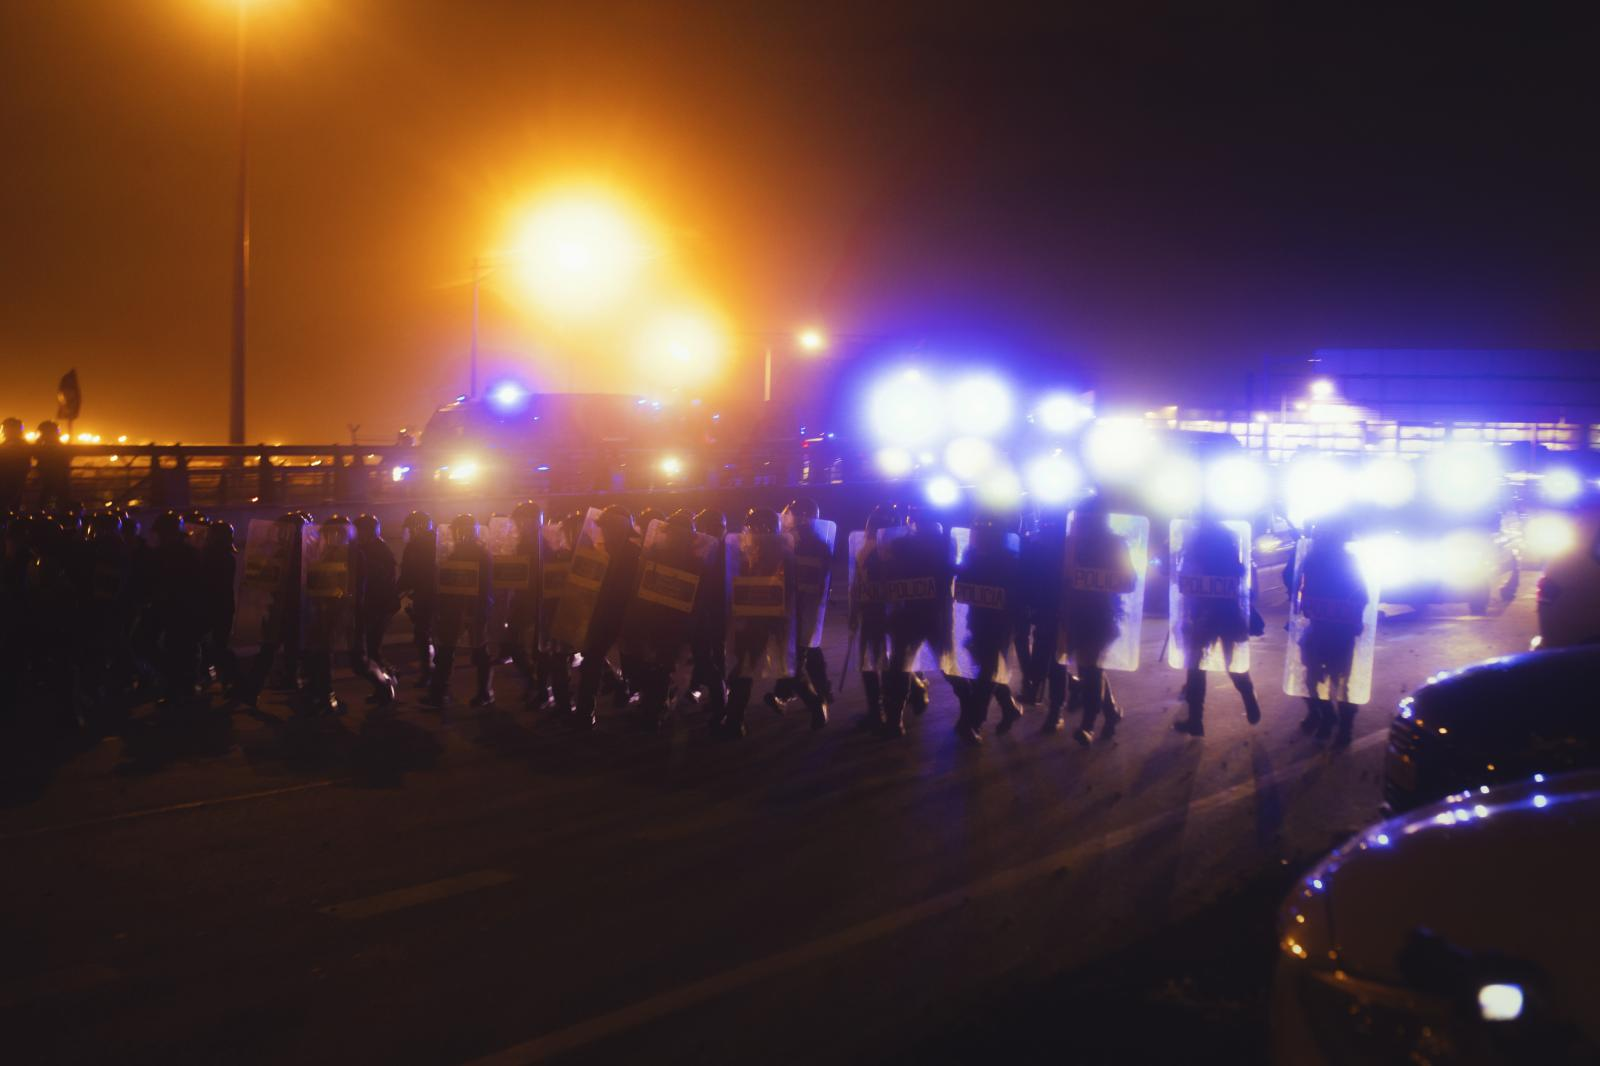 """Police intervention on the highway violently disperses a sit-in. Tsunami Democràtic cut off the main highway entry points into several big Catalan municipalities and several roads as a way to protest over leaders' jail sentences. During one of those mass march, people had been walking for three days to reach the Catalan capital in the so-called """"freedom marches."""" The highway, metro and train station were blocked off several times and mass protests were recorded also in the municipality of La Jonquera and in the border with France. Spanish and French police intervened on several occasions to remove road cuts, identify and arrest the perpetrators of sabotages and blocks. Drivers were also experiencing problems on the N-II, N-240, N-340 and N-420 national highways. (October 14,2019. Barcelona, Spain)"""